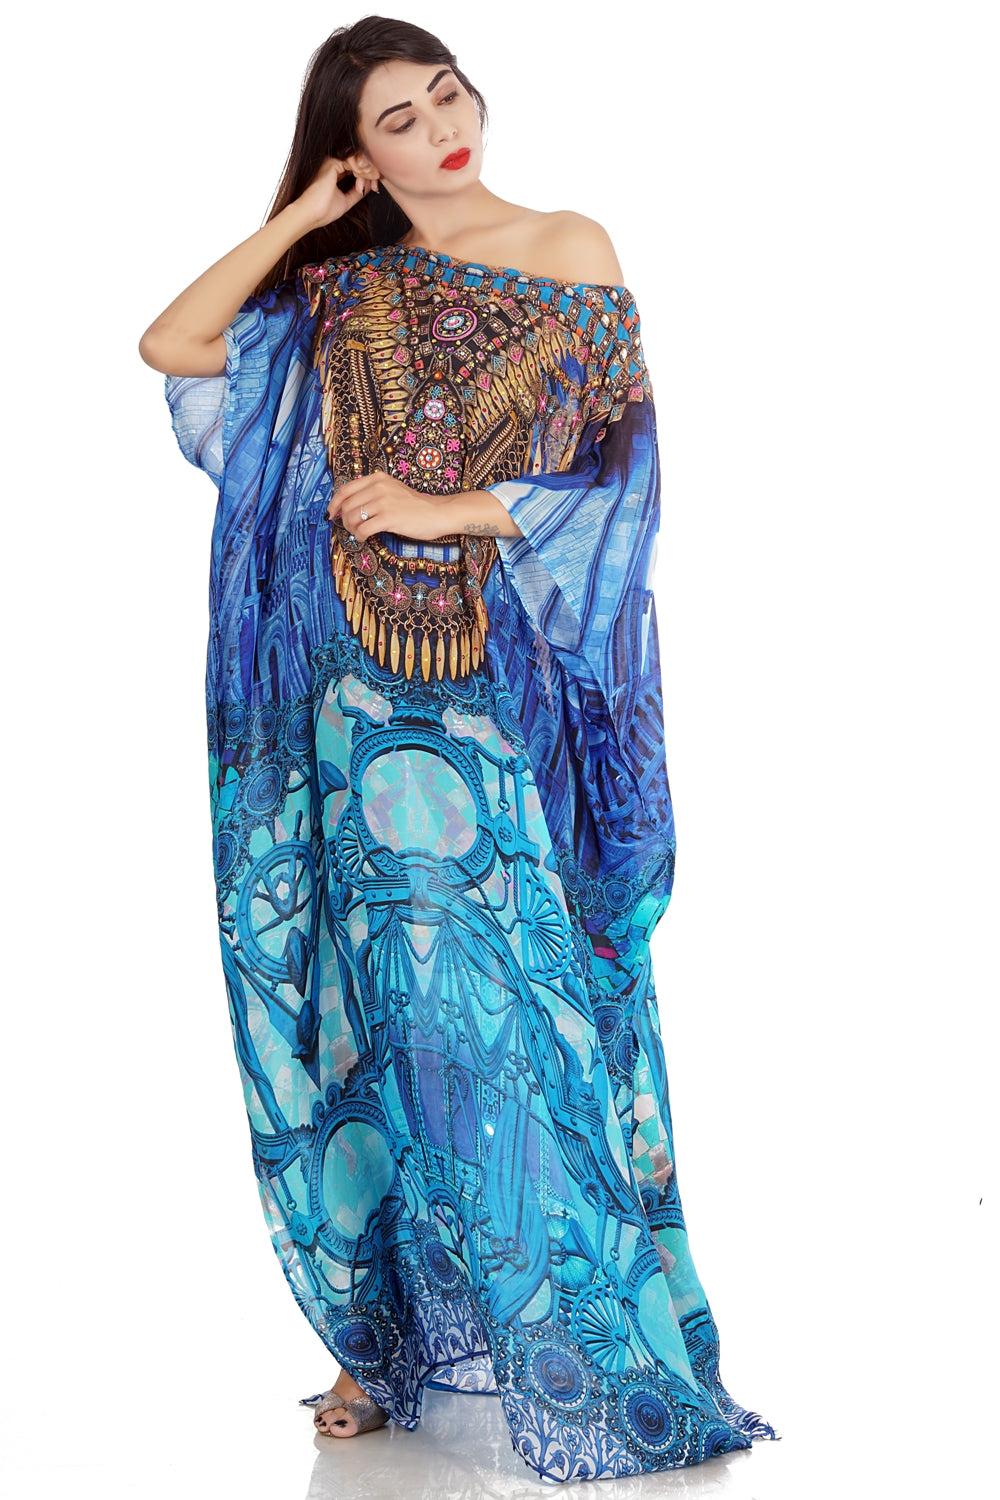 Inspired by Catchy Porcelain Print Uniquely Designed Turquoise Printed Silk Kaftans - Silk kaftan